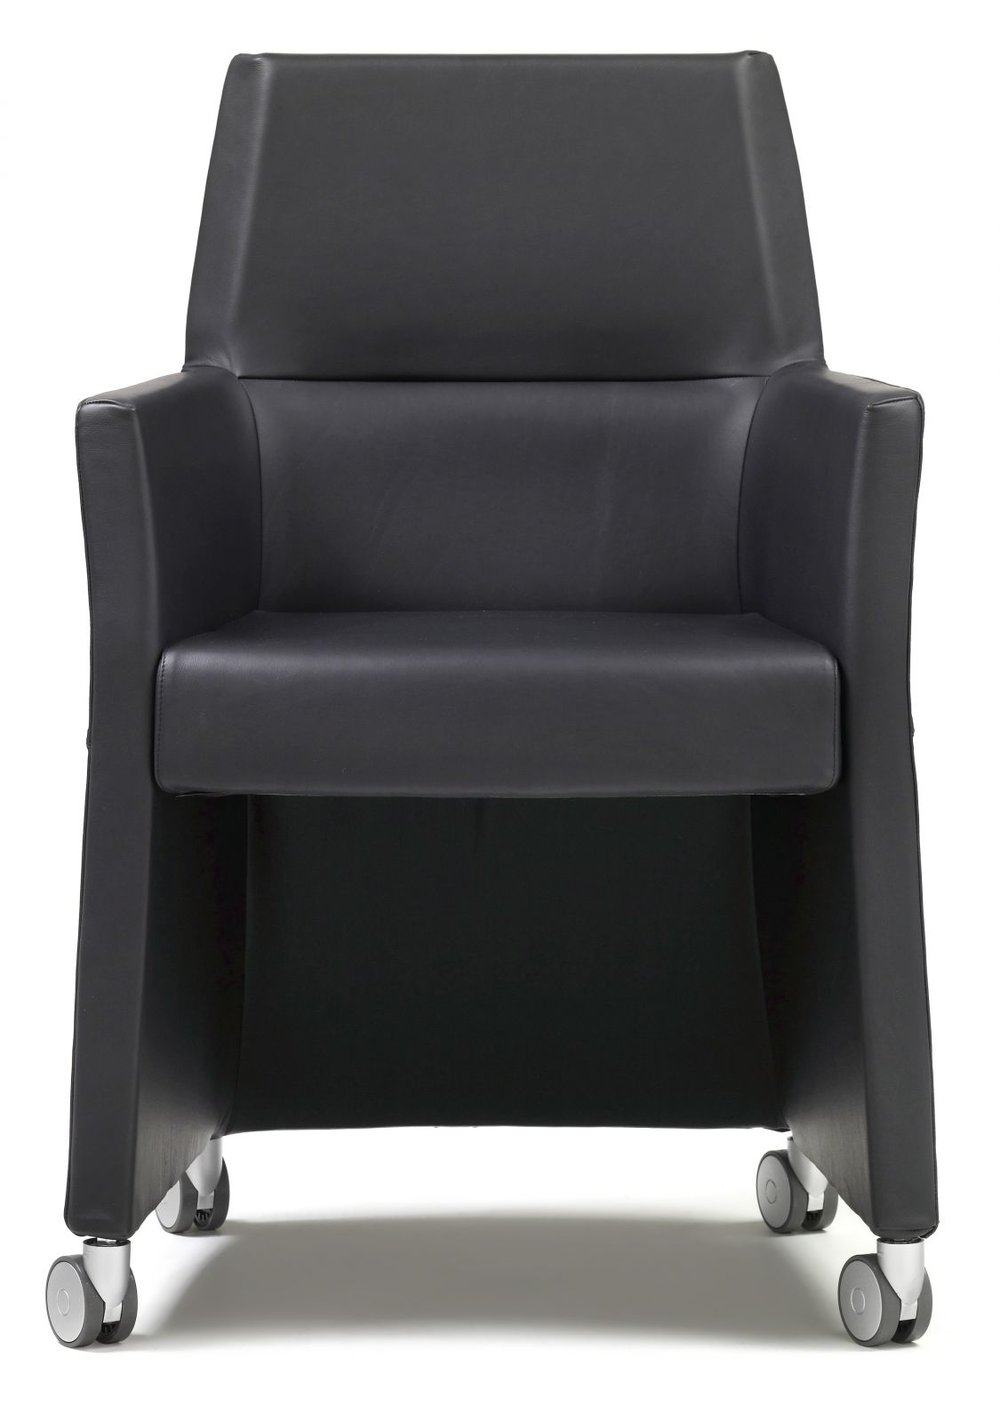 MOF 101 Modern Office Chair